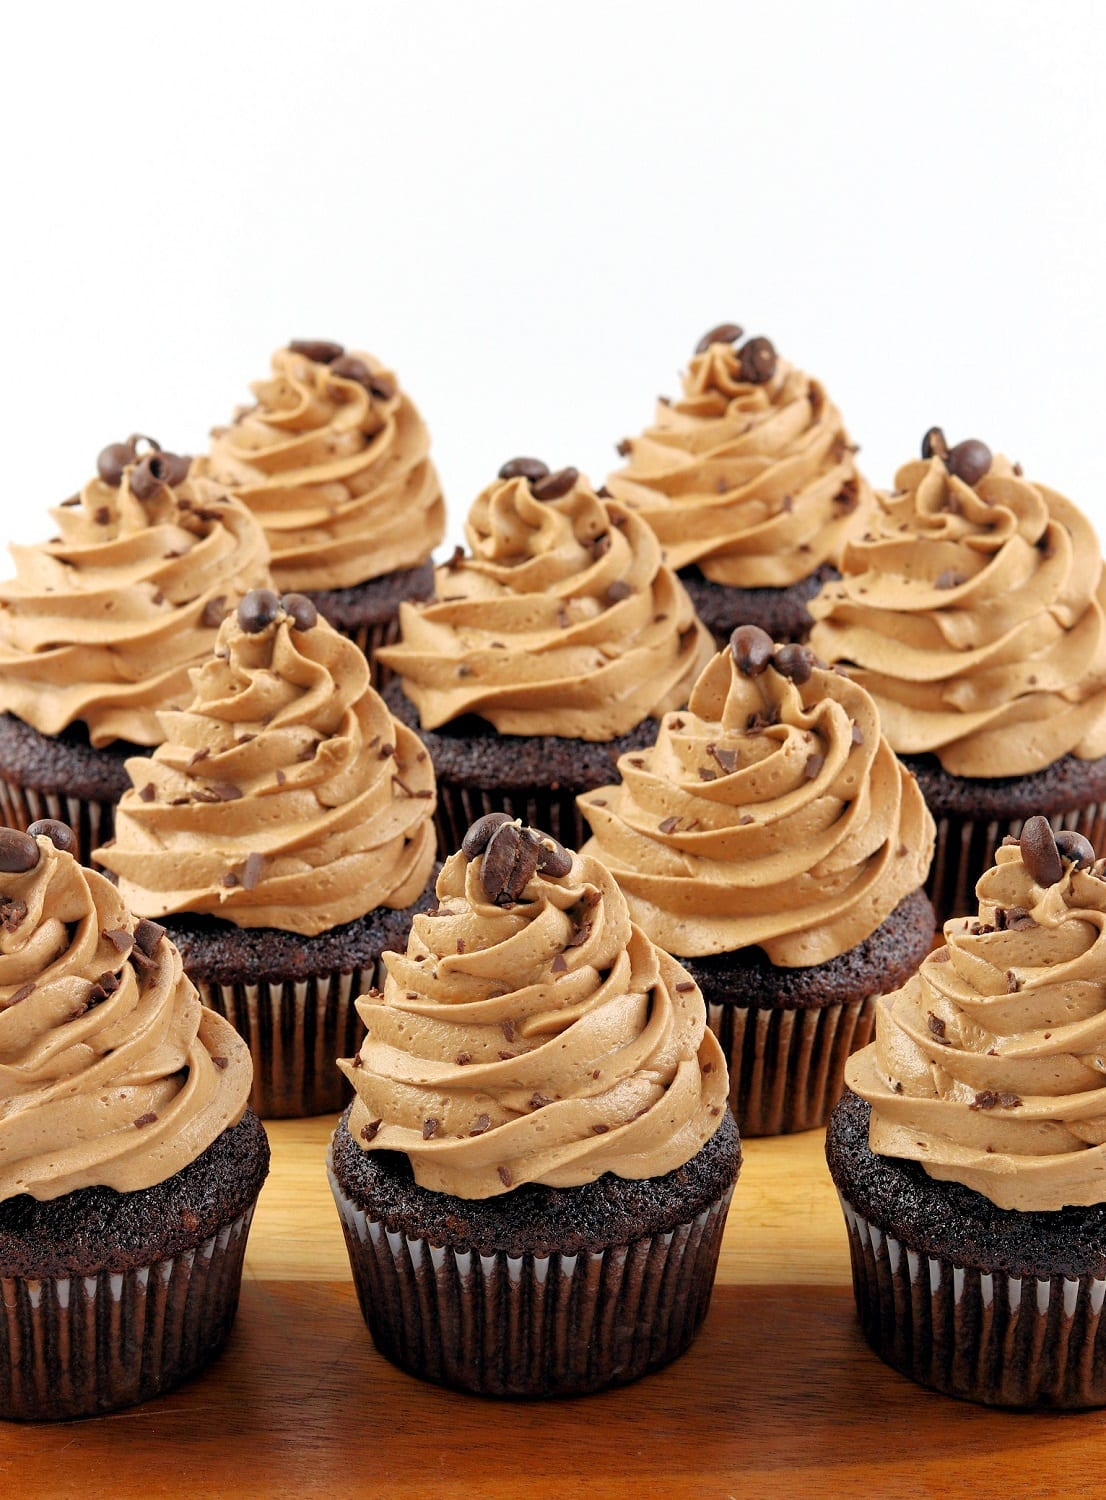 Chocolate and Espresso Cupcakes with Mocha Buttercream